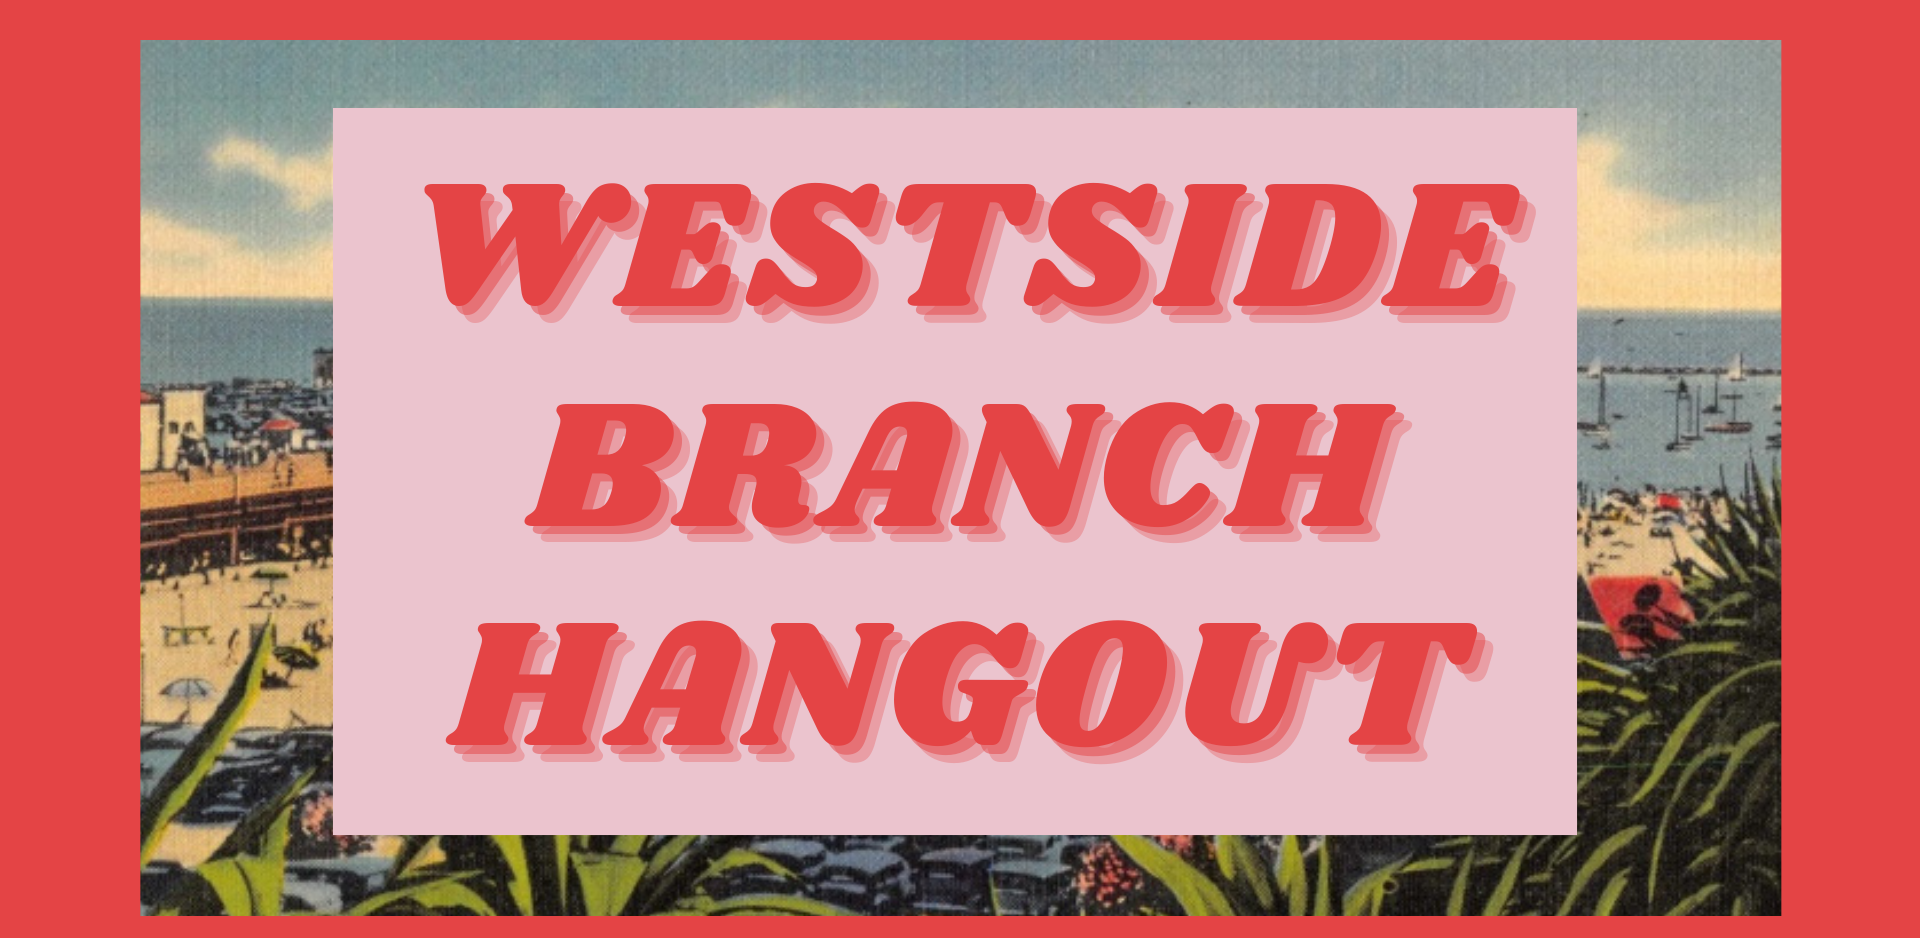 """beach image with red text that says """"westside branch hangout"""" overlayed"""